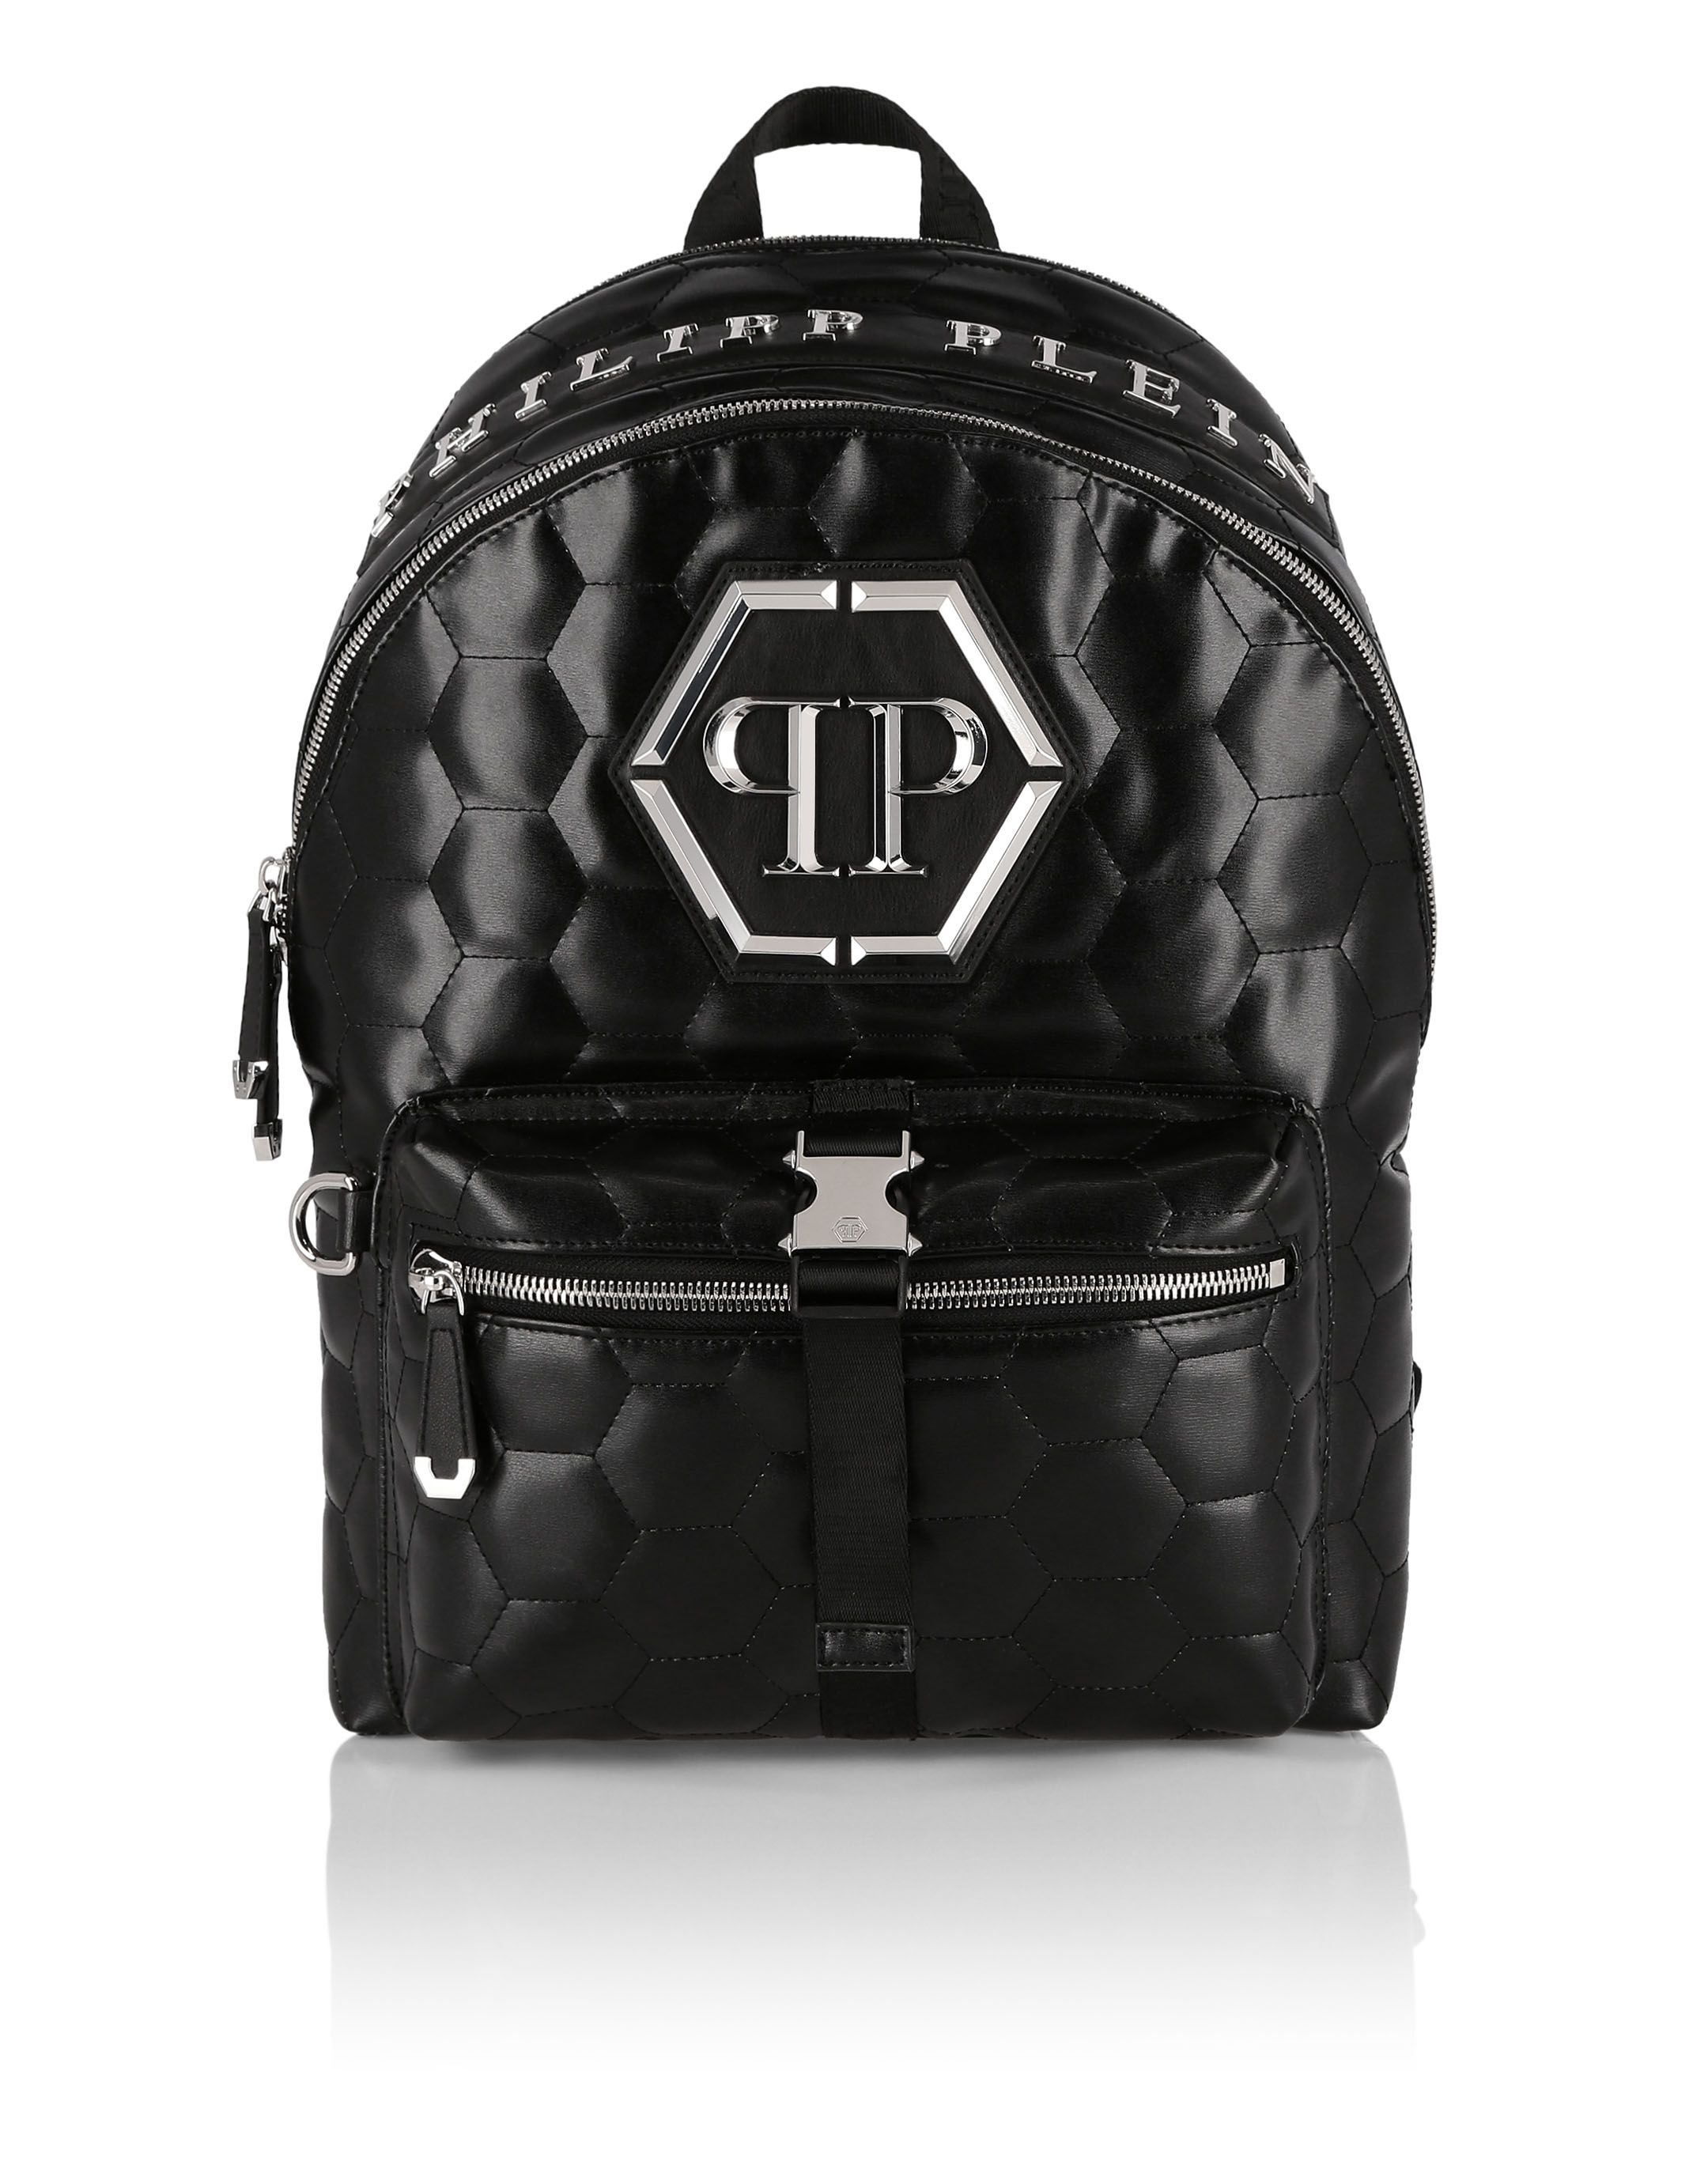 c4b8ac05a46 PHILIPP PLEIN BACKPACK ORIGINAL. #philippplein #bags #lining #polyester # backpacks #cotton